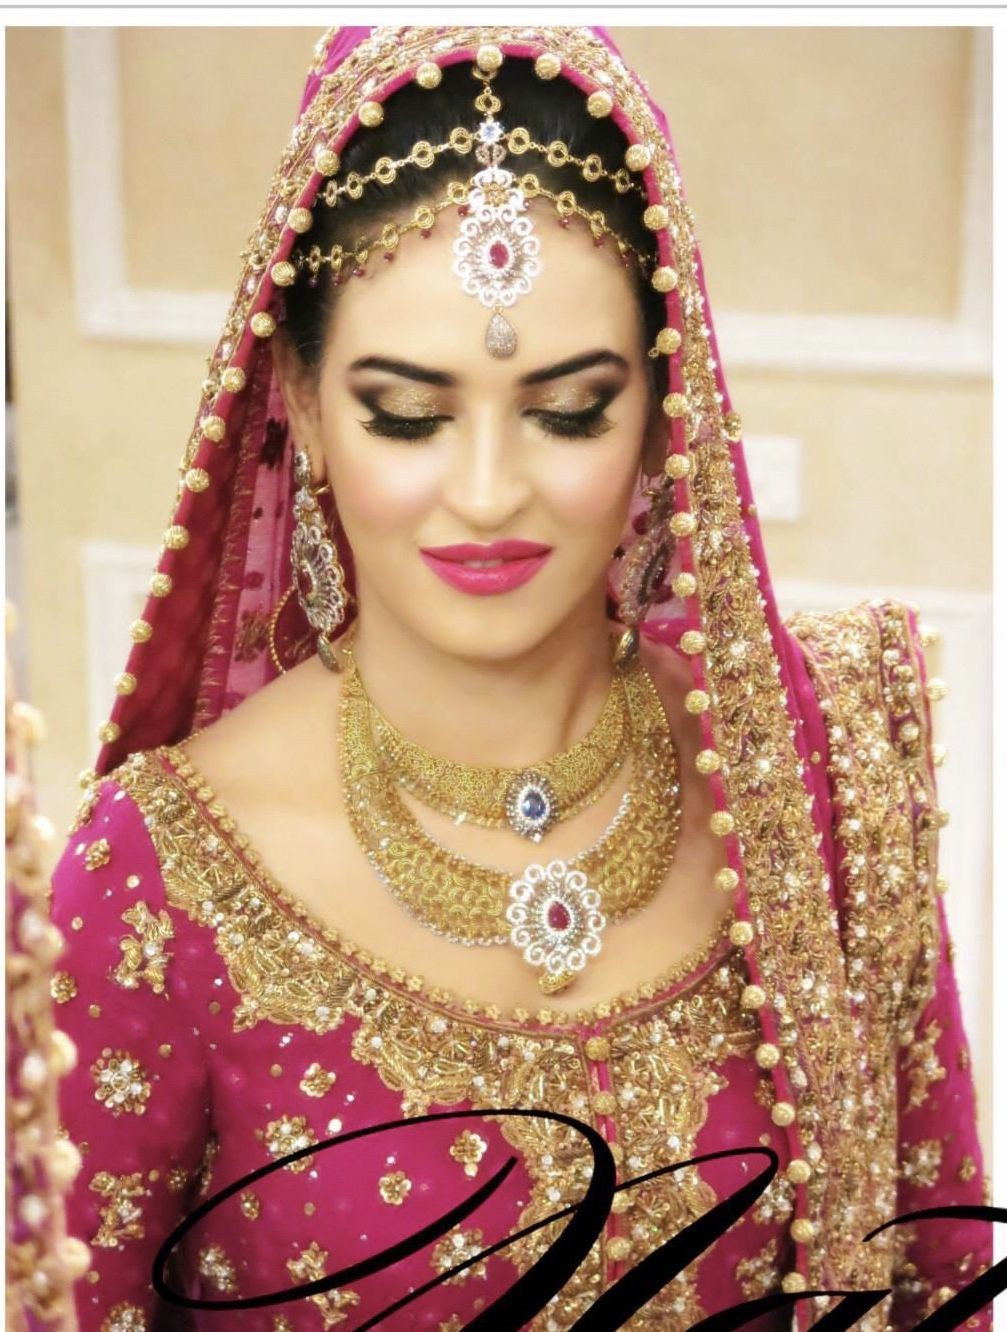 barat bride hair and jewelry inspo | bridal jewelry,hair